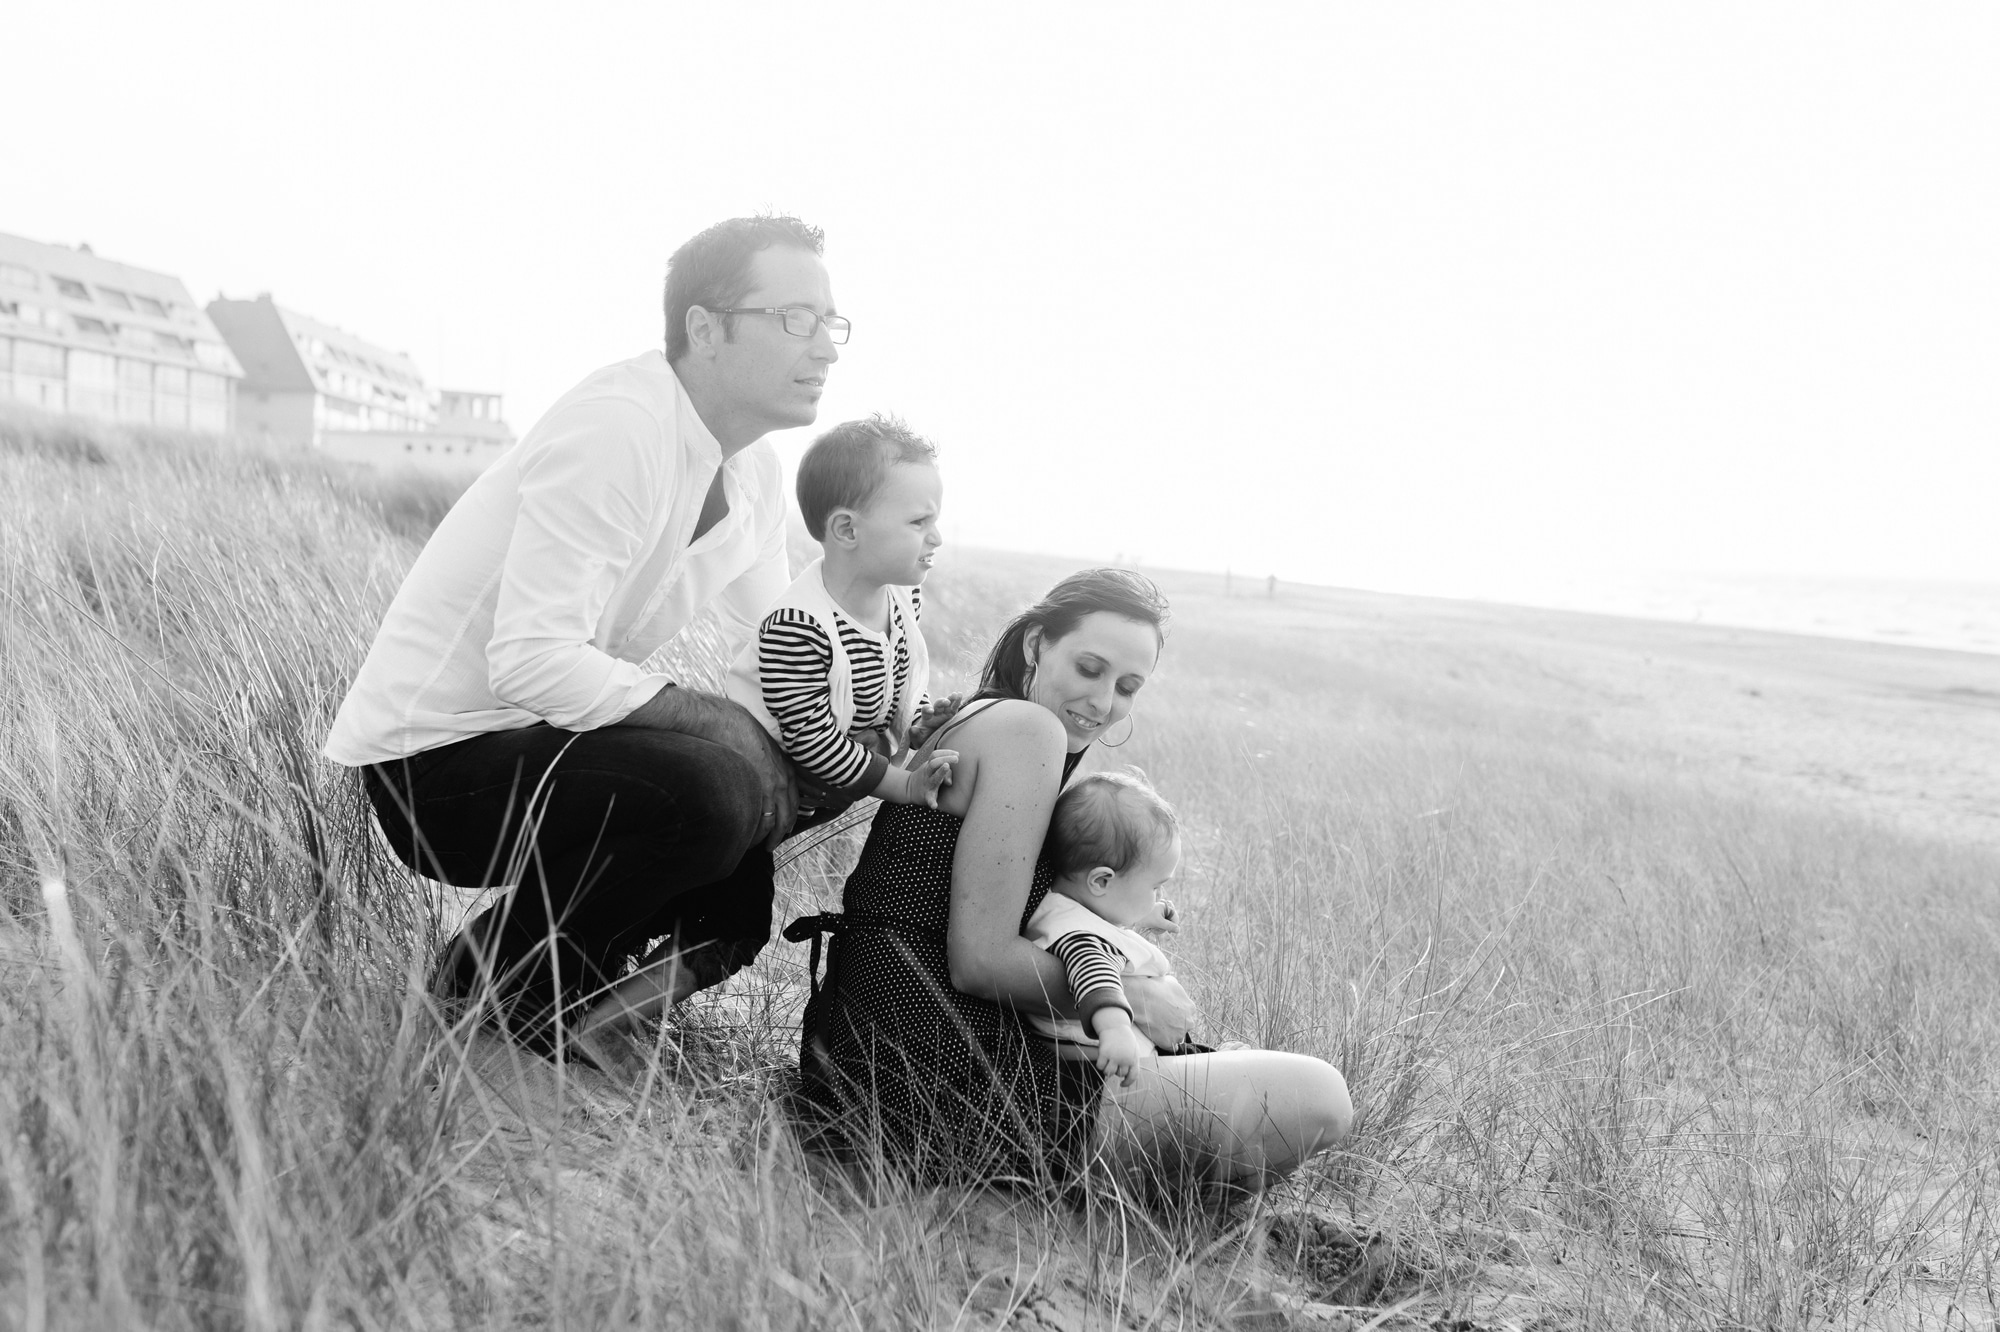 séance famille cabourg basse normandie photographe shooting lifestyle-31